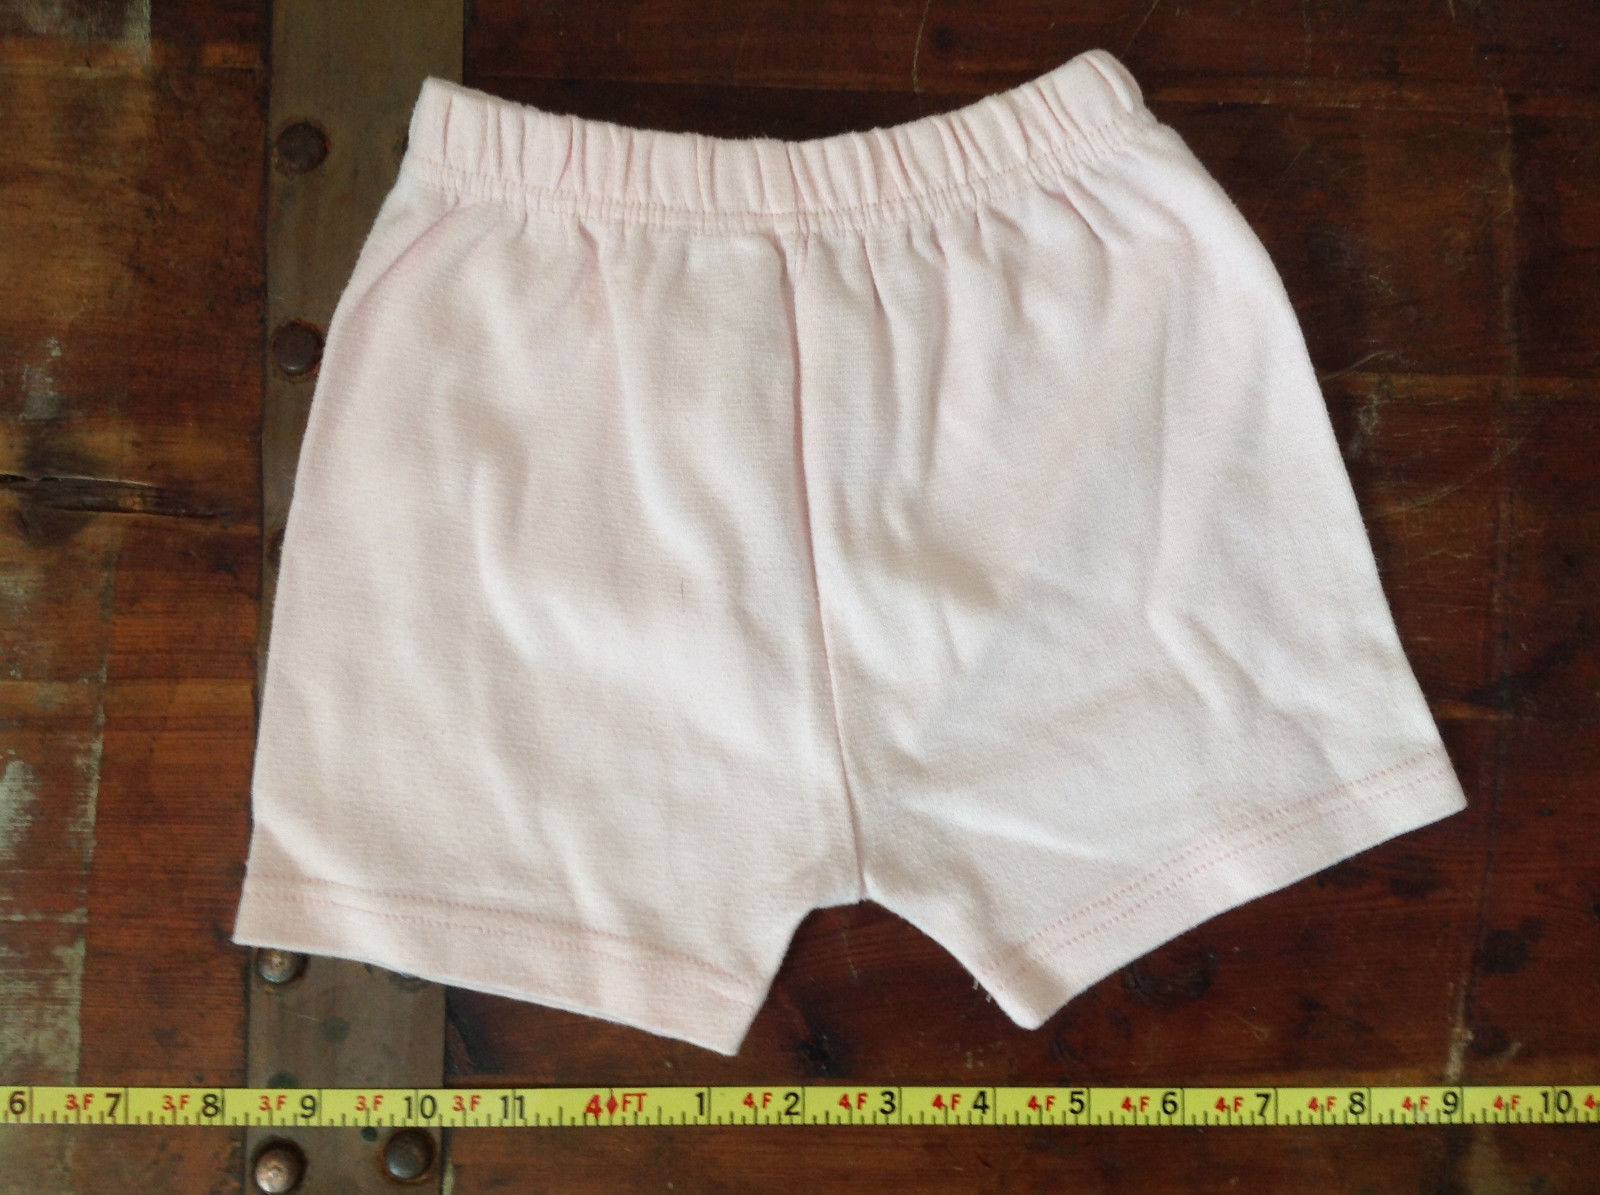 Infant Pale Pink Elastic Waist Shorts from Basic Editions Size 24 Months